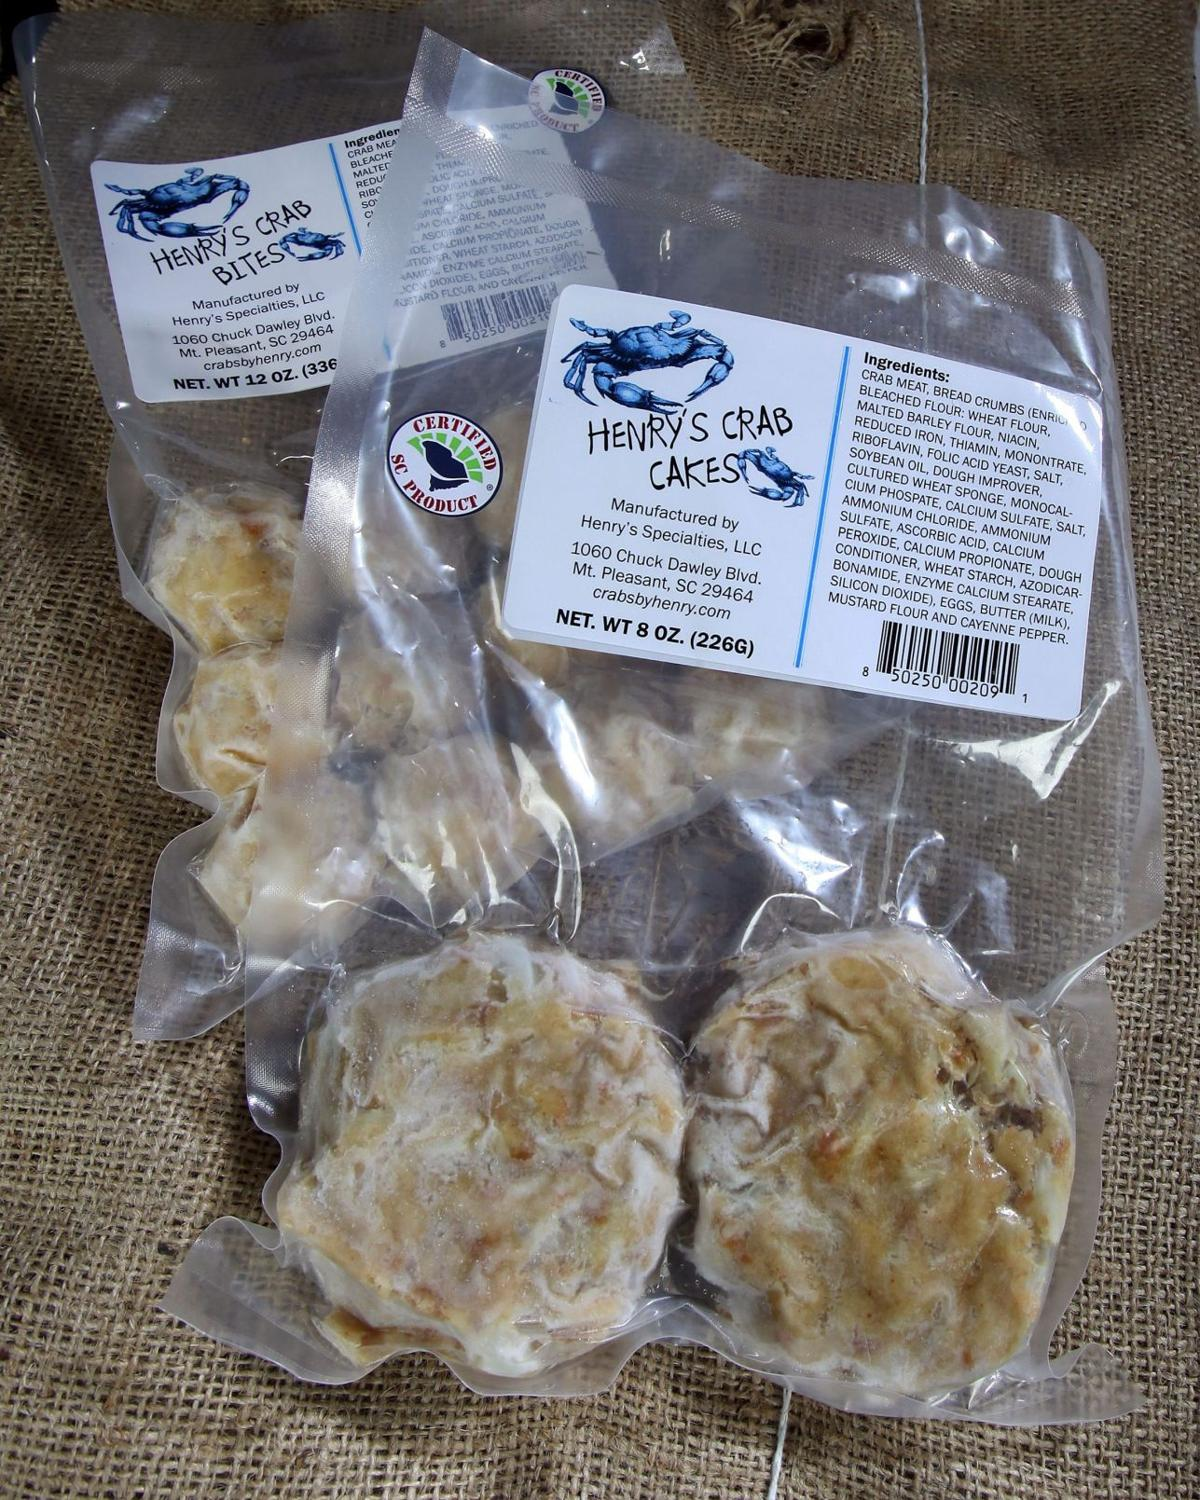 Henry's Crab Cakes ends retail production